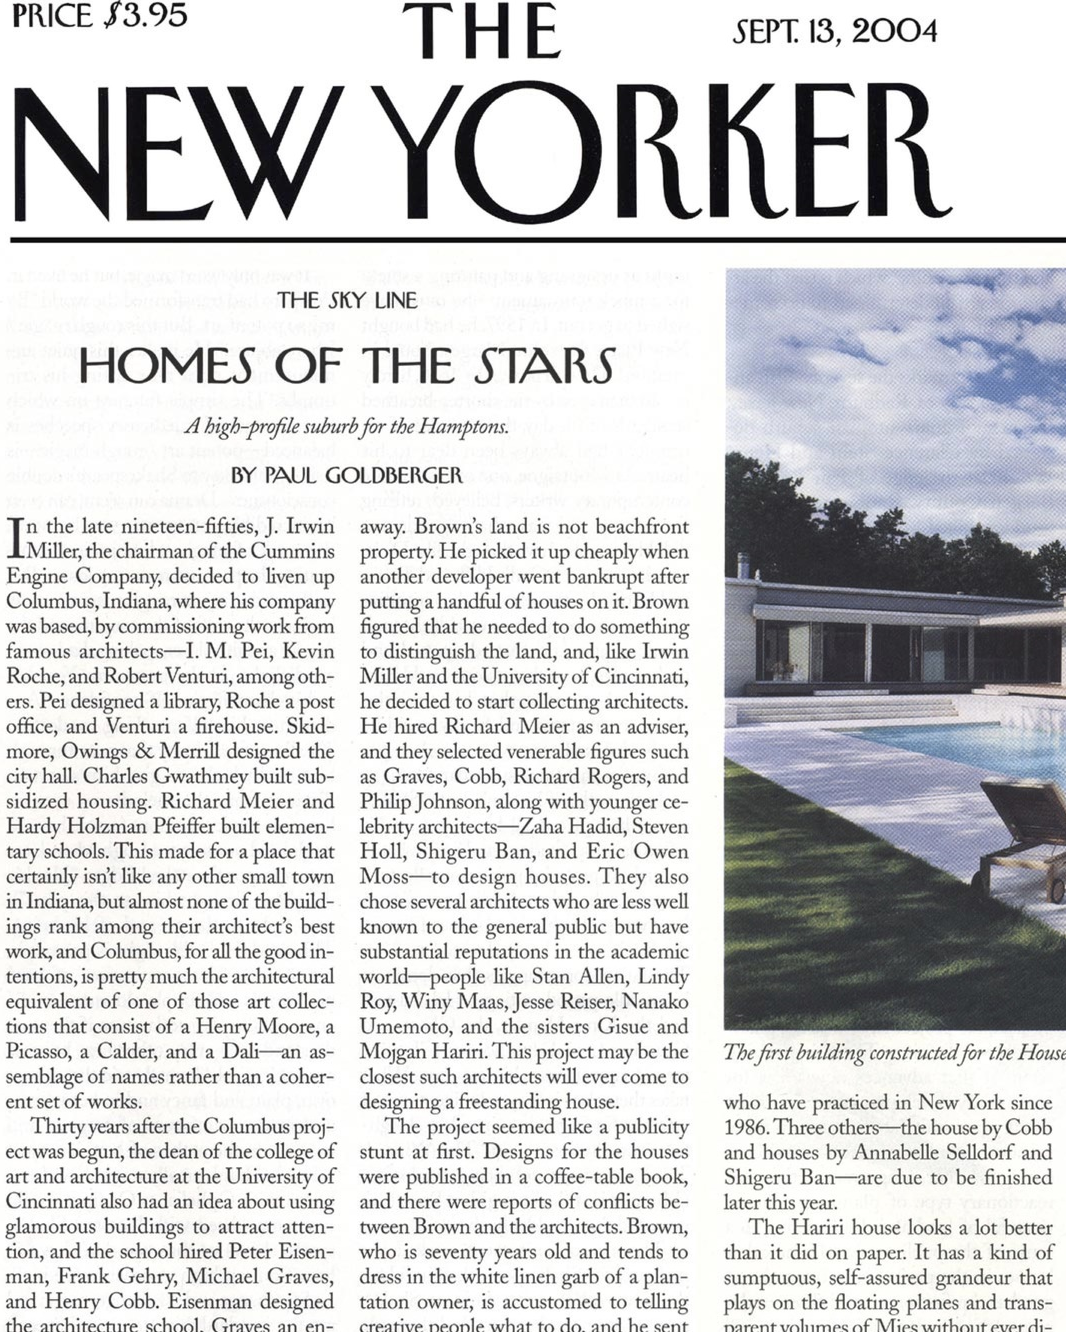 09.13.04 THE NEW YORKER (SAGAPONAC HOUSE)